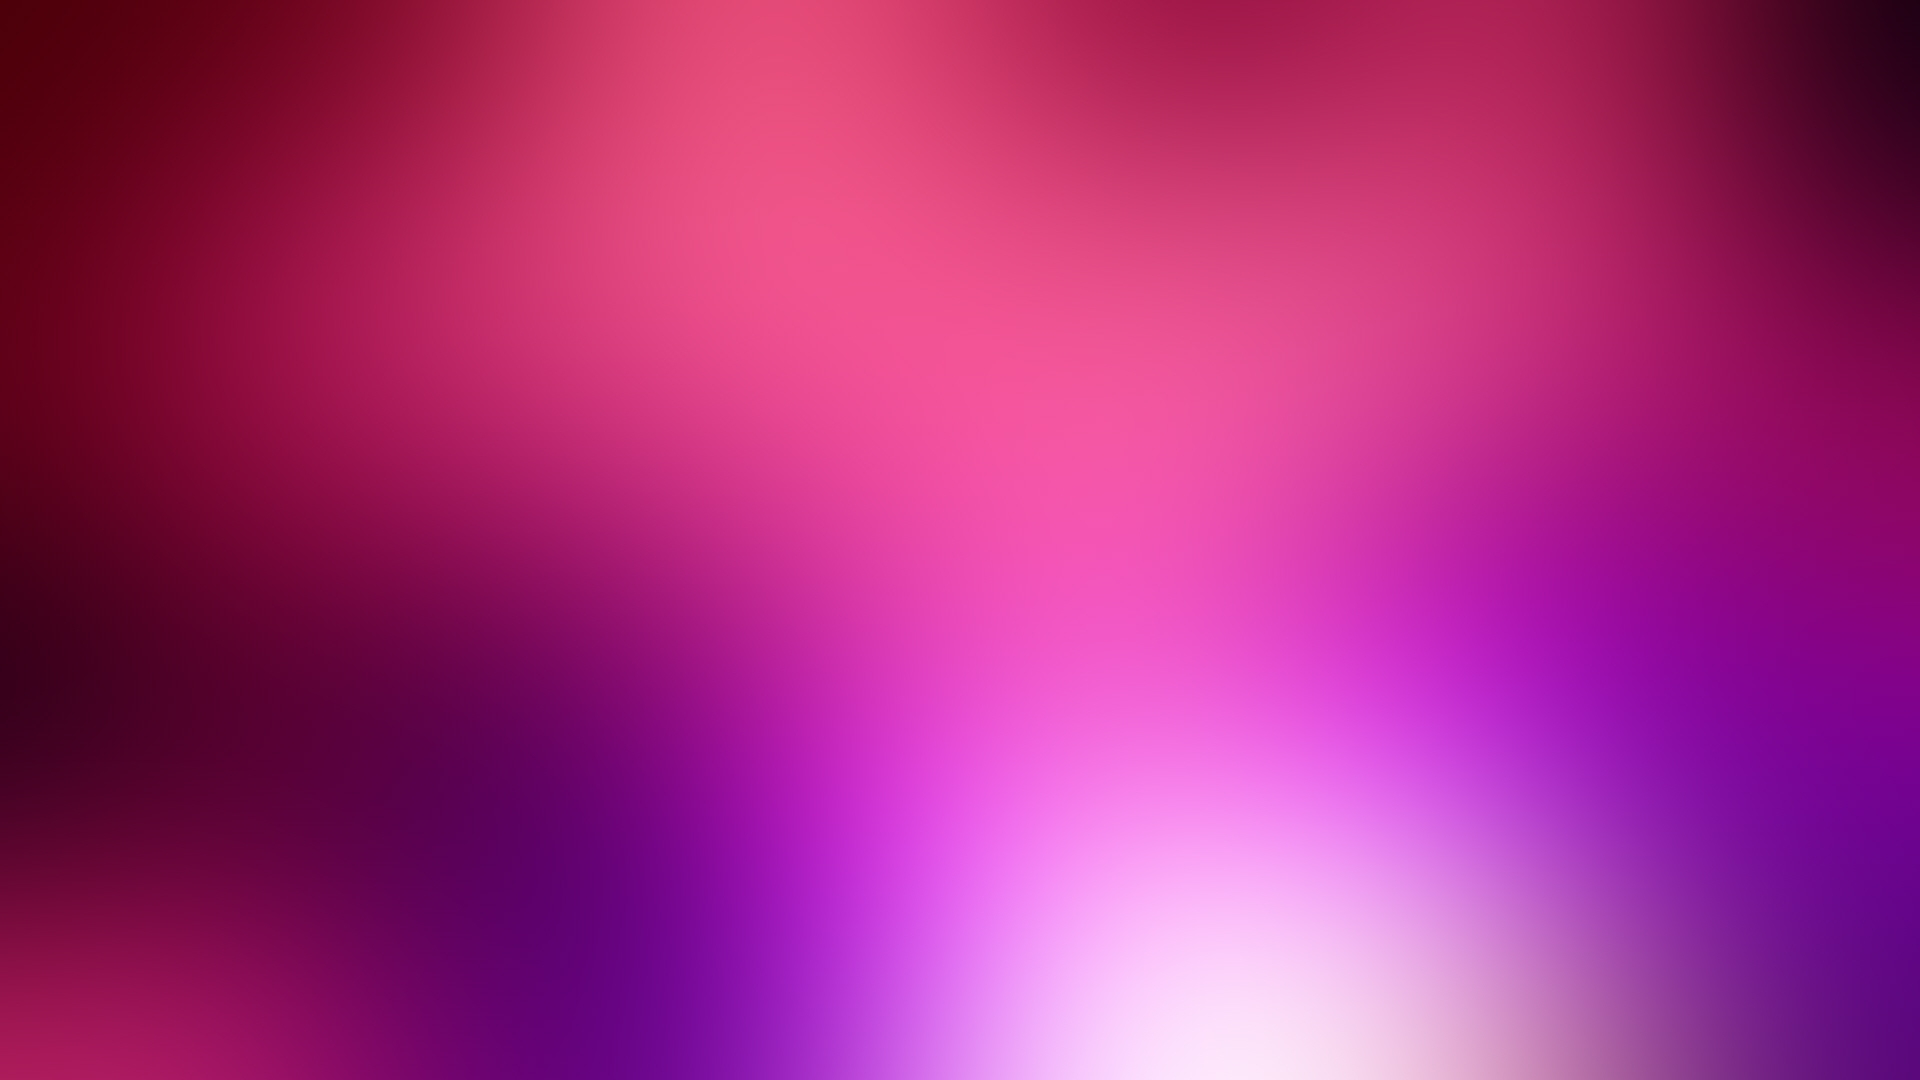 Download wallpaper 1920x1080 pink purple light abstraction full pink purple light junglespirit Image collections